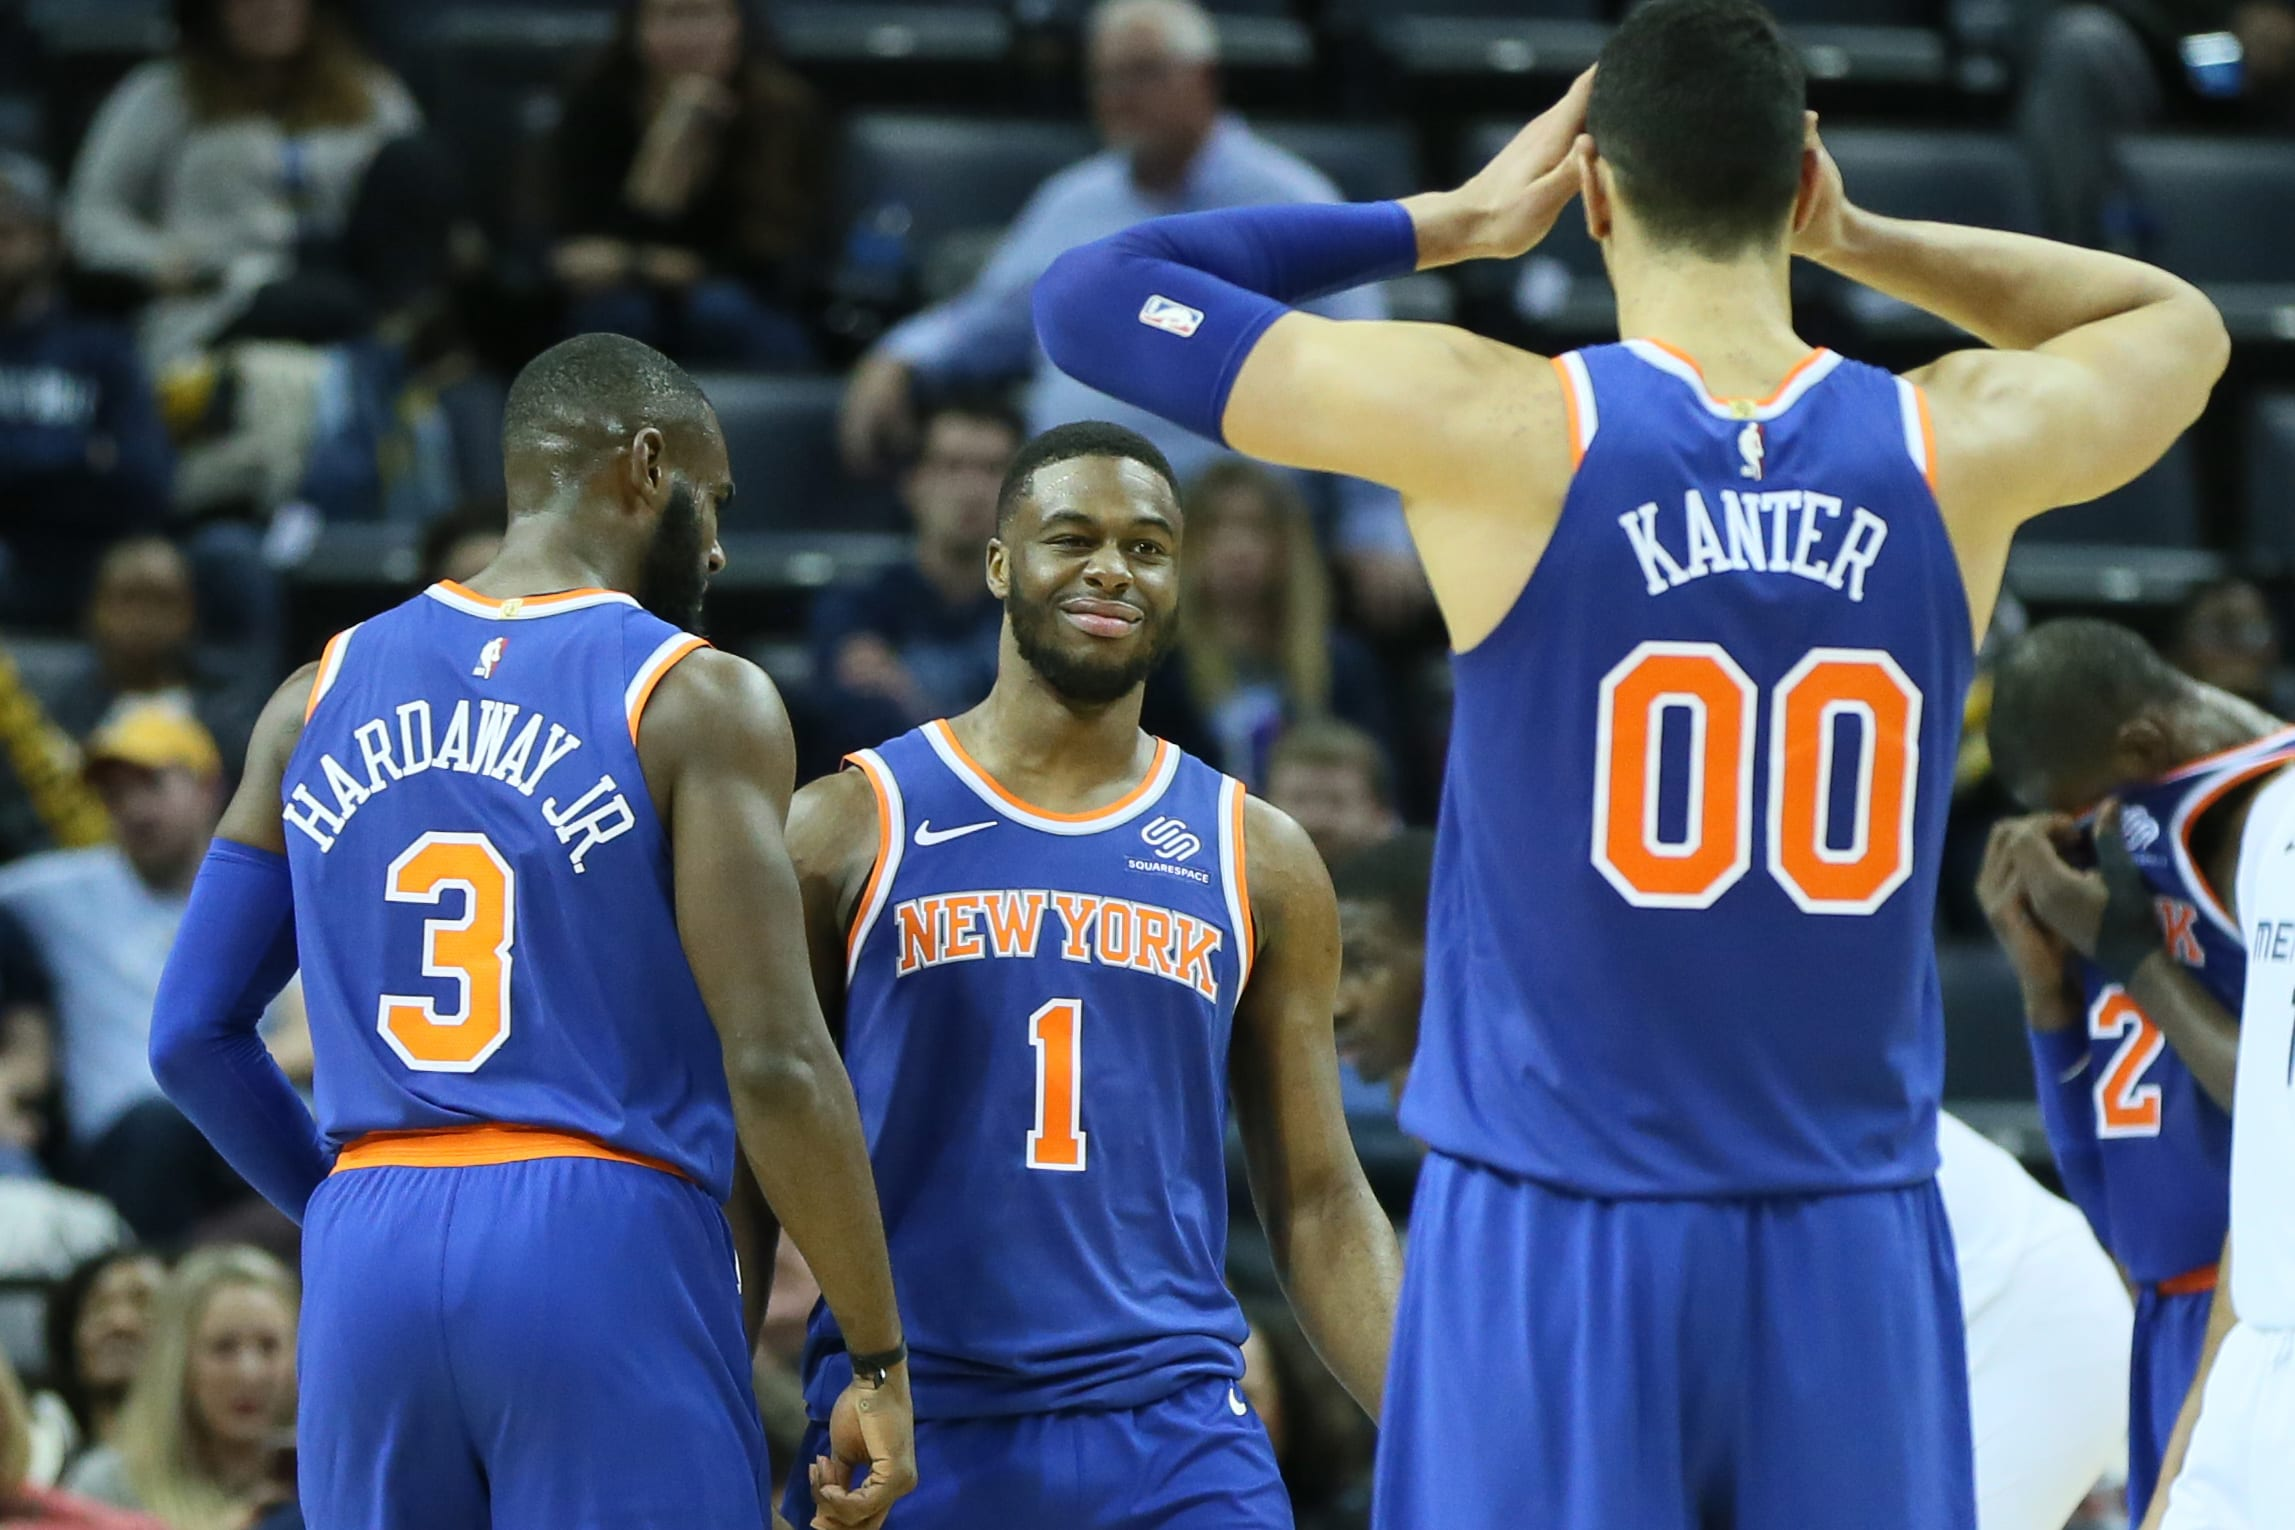 Grading The New York Knicks Players So Far In The 2018